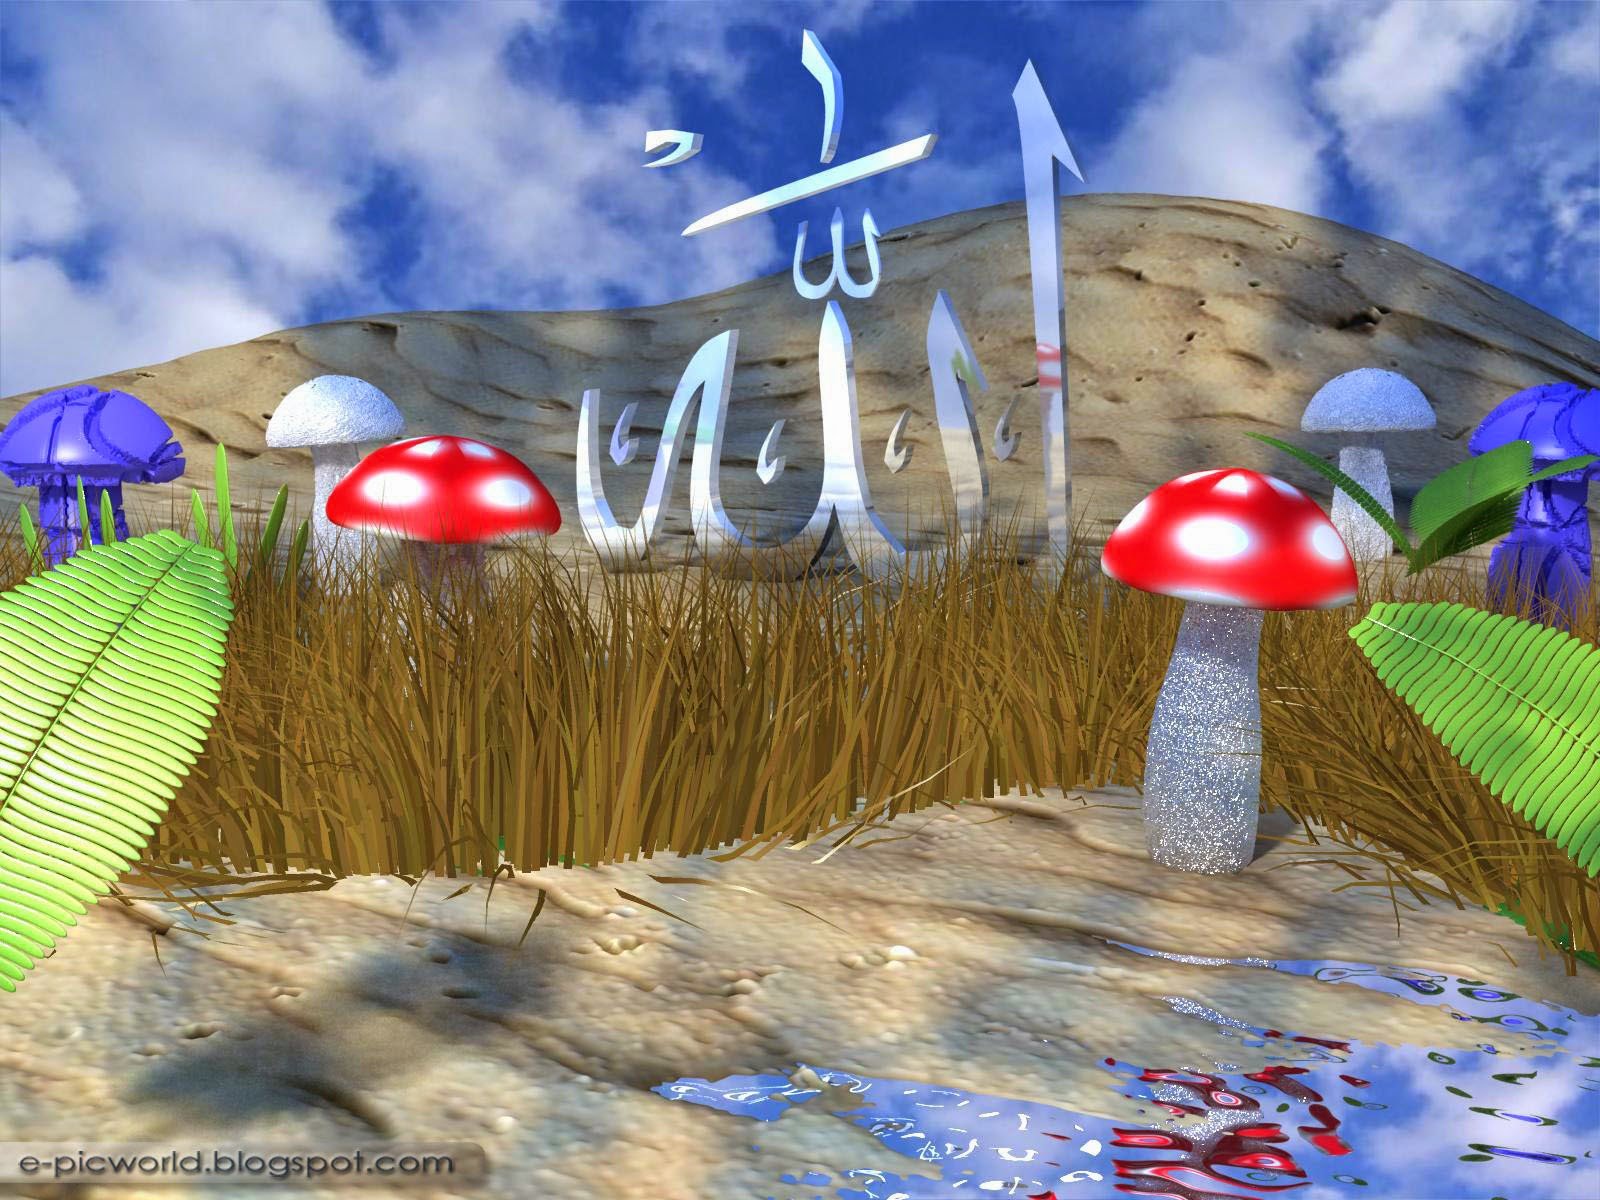 mushrooms in a desert with calligraphy